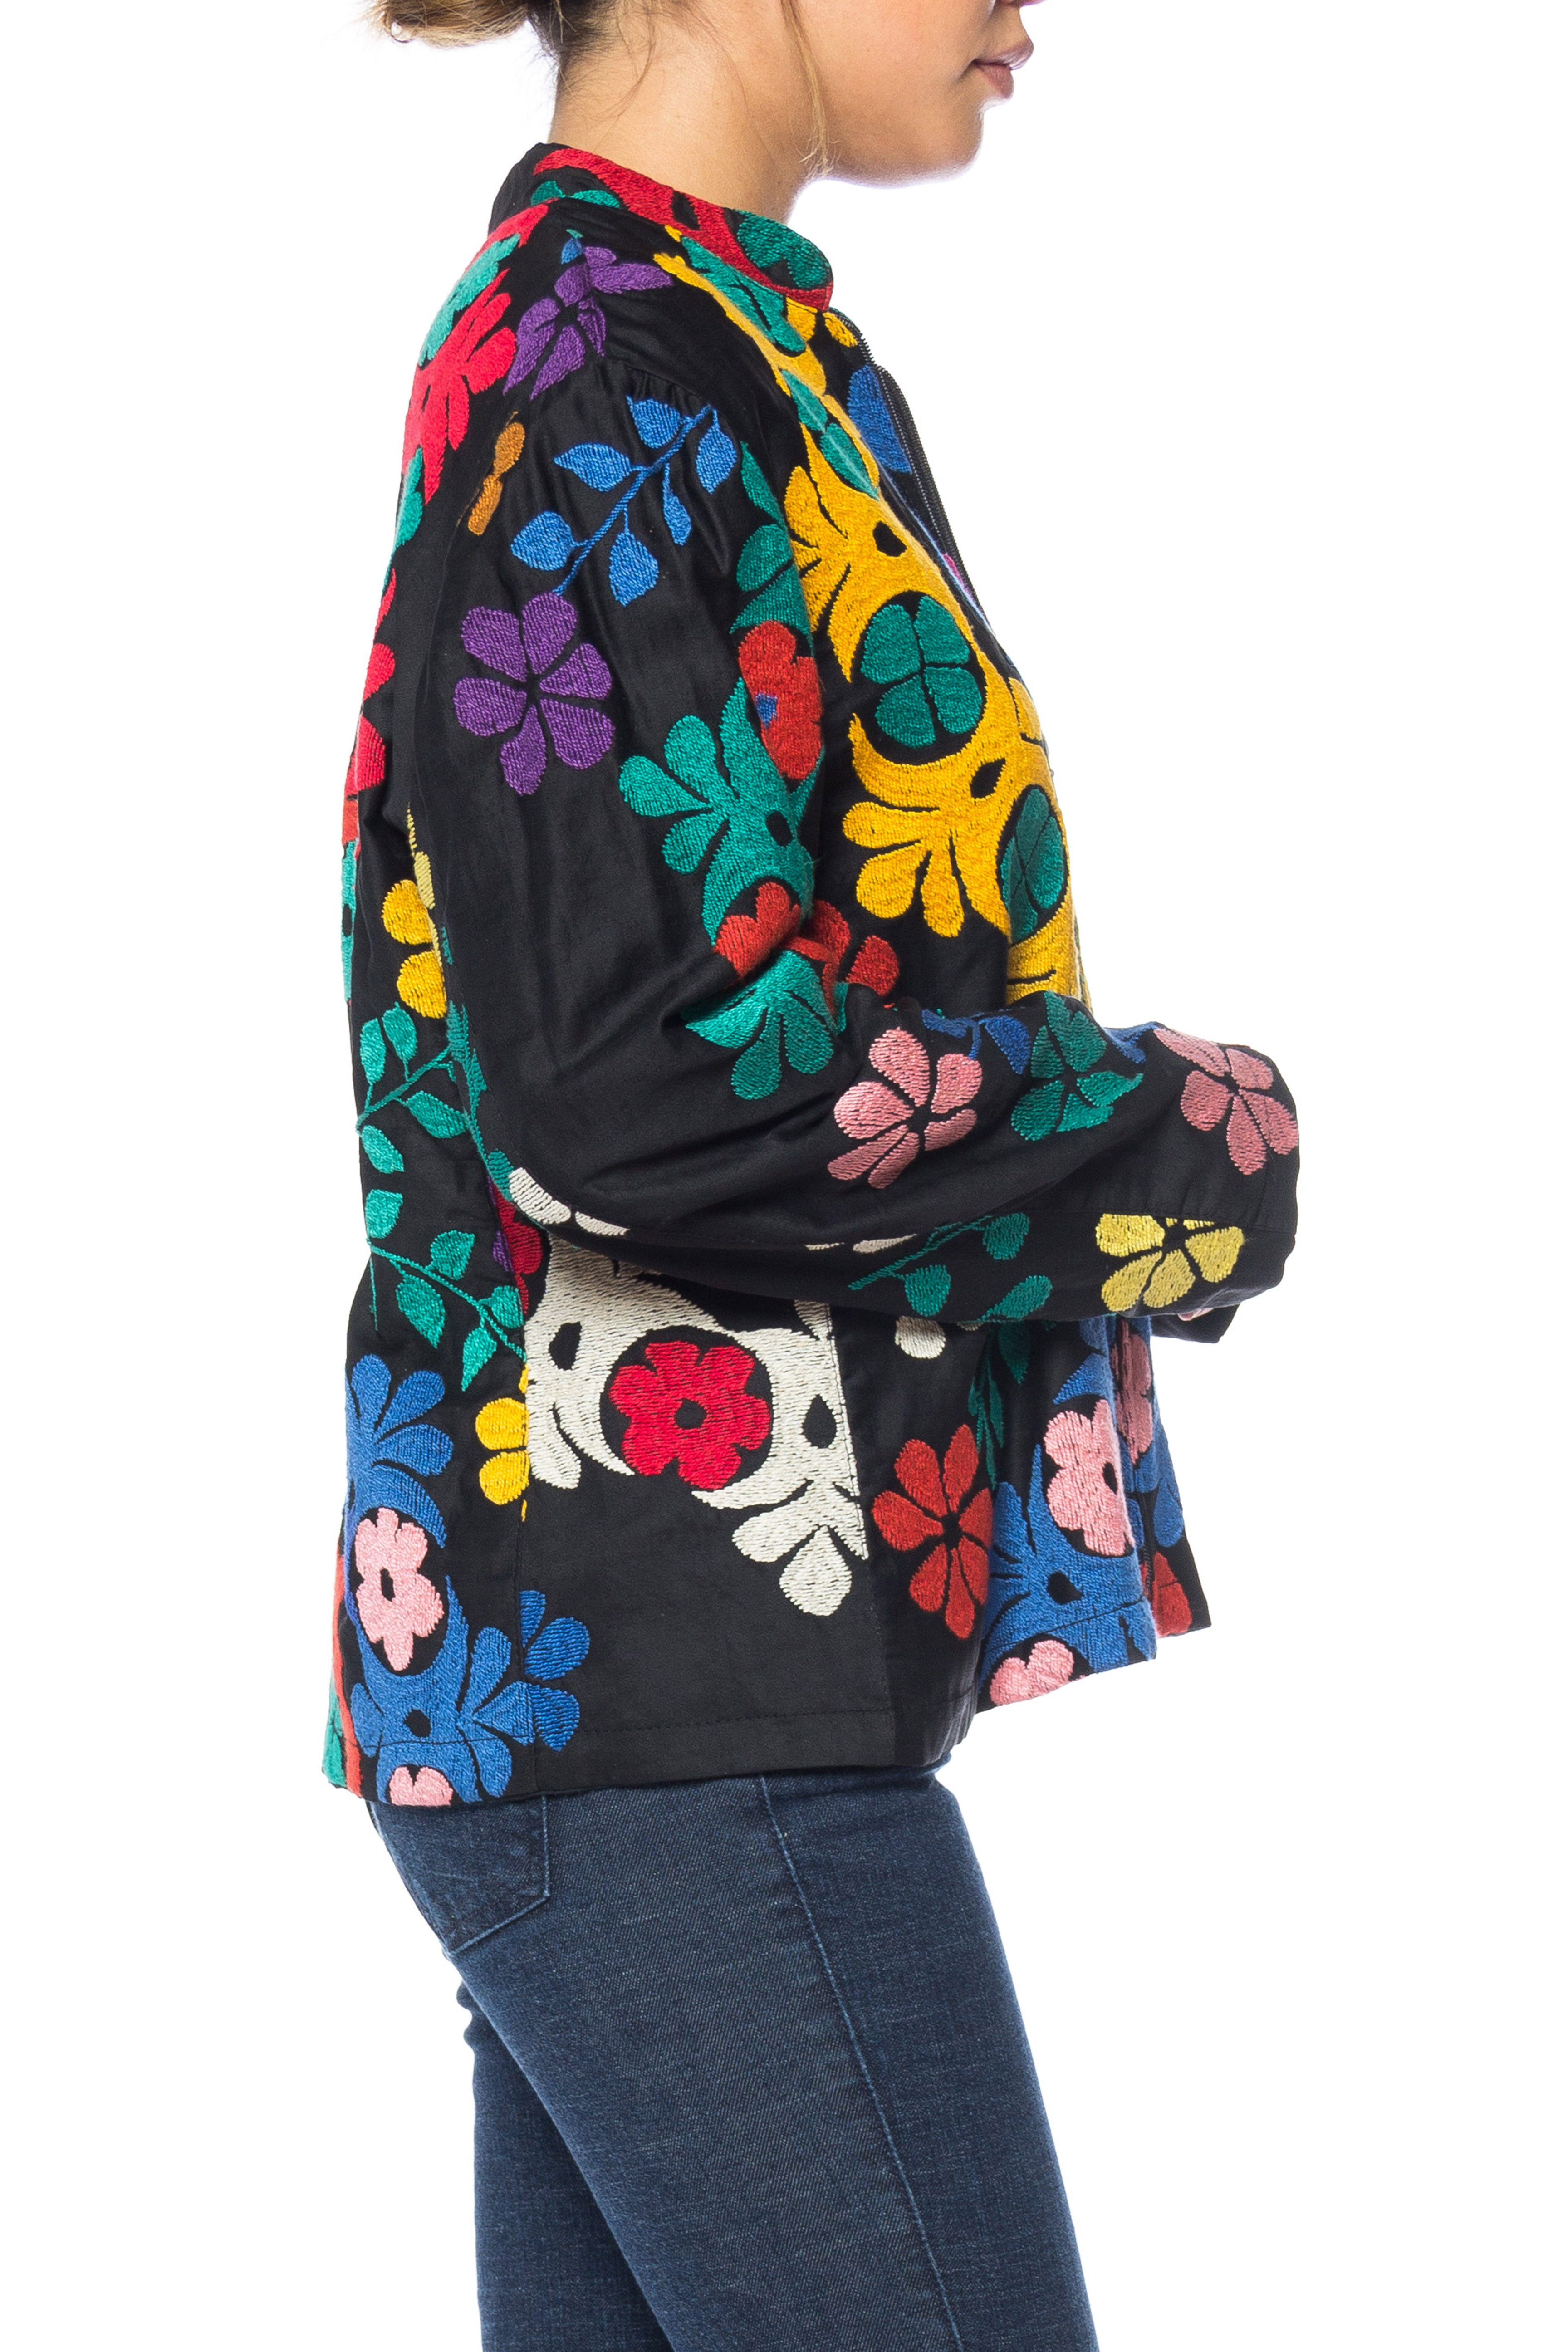 1970S Black Cotton Zip Front Jacket Covered In Uzbek Hand Embroidery